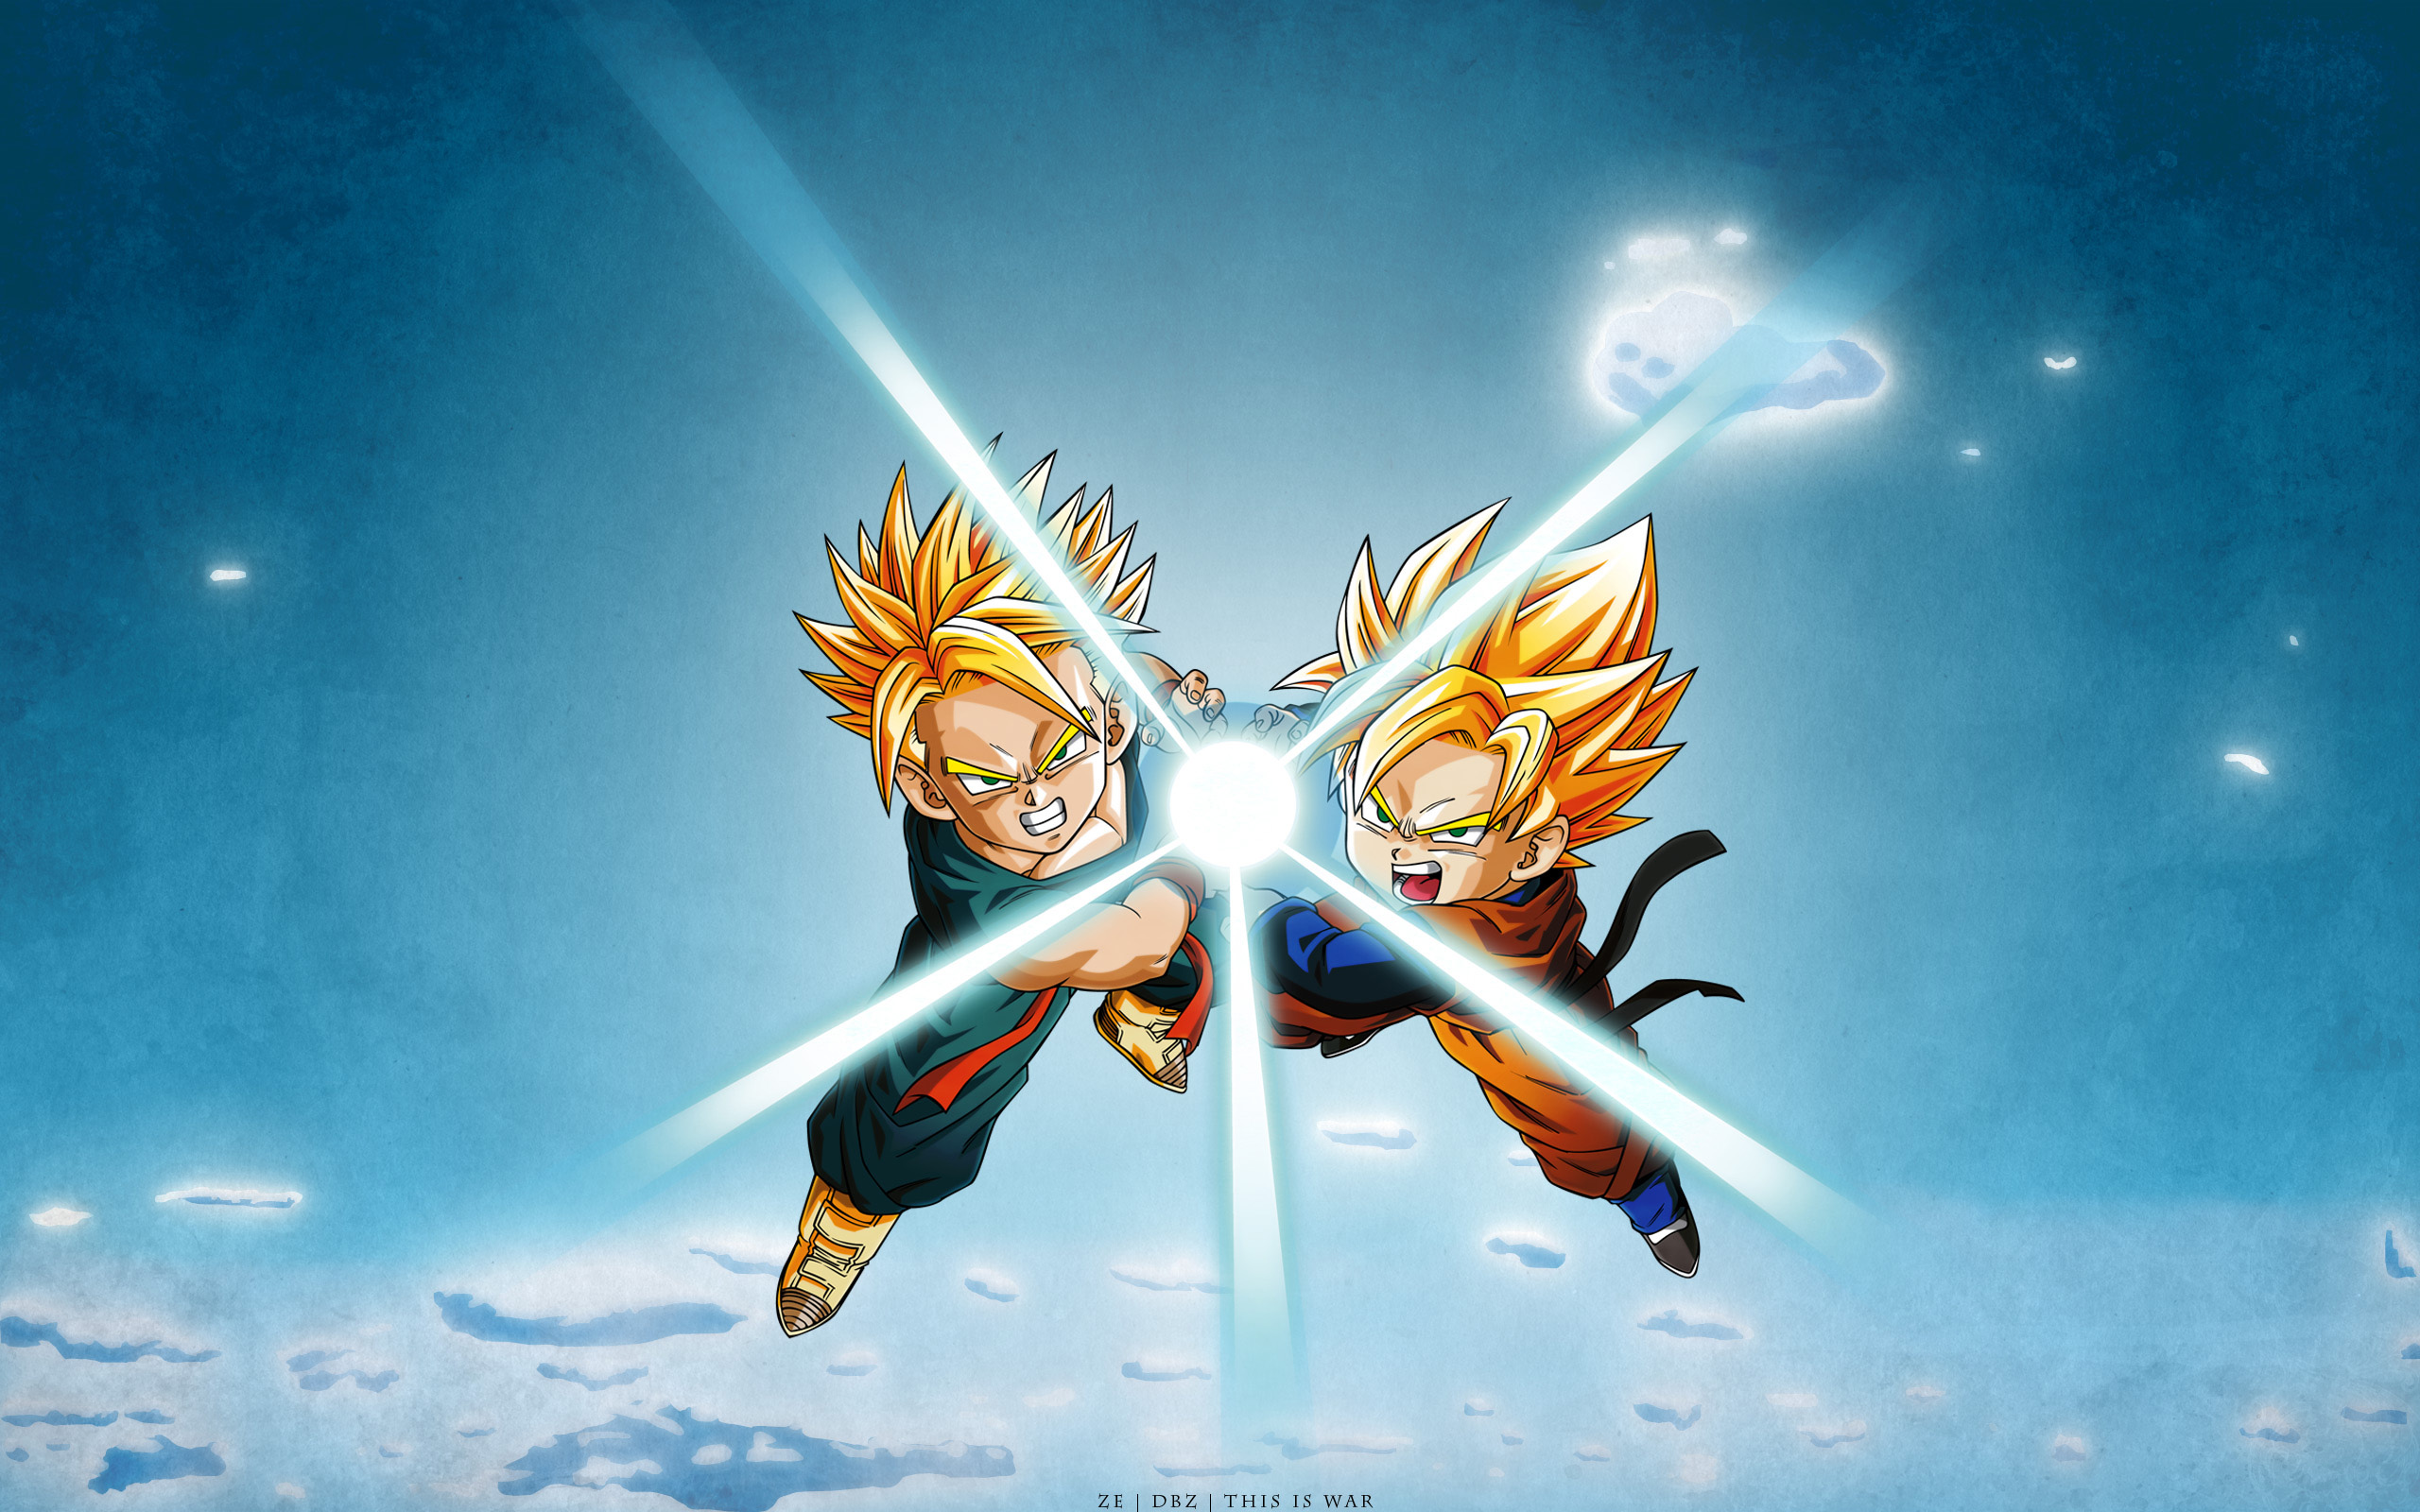 Dragon ball z wallpaper 19 of 49 goten and trunks - Dragon ball super background music mp3 download ...